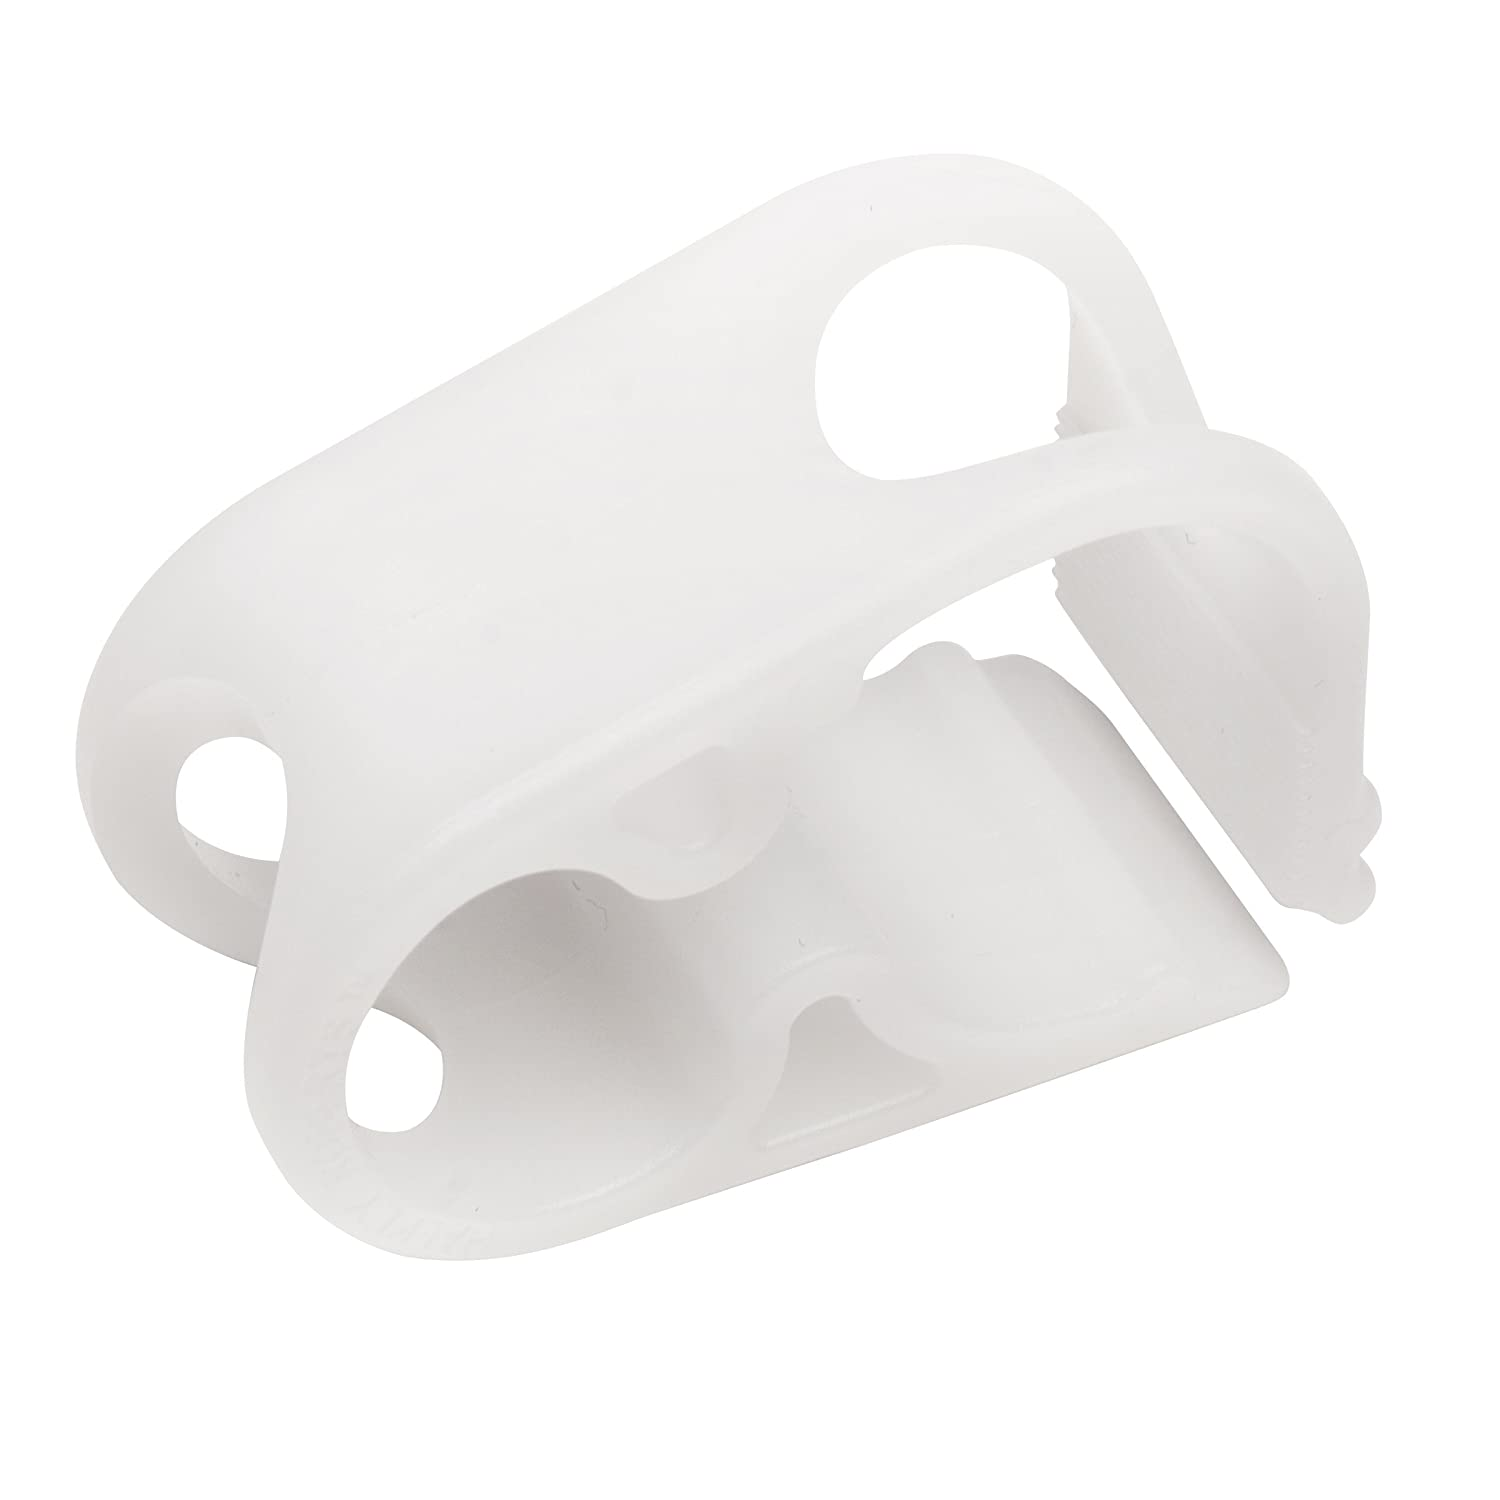 SP Bel-Art Acetal Mid-Range Plastic for Spring new work one service after another Tubing ⅛ to Clamps;